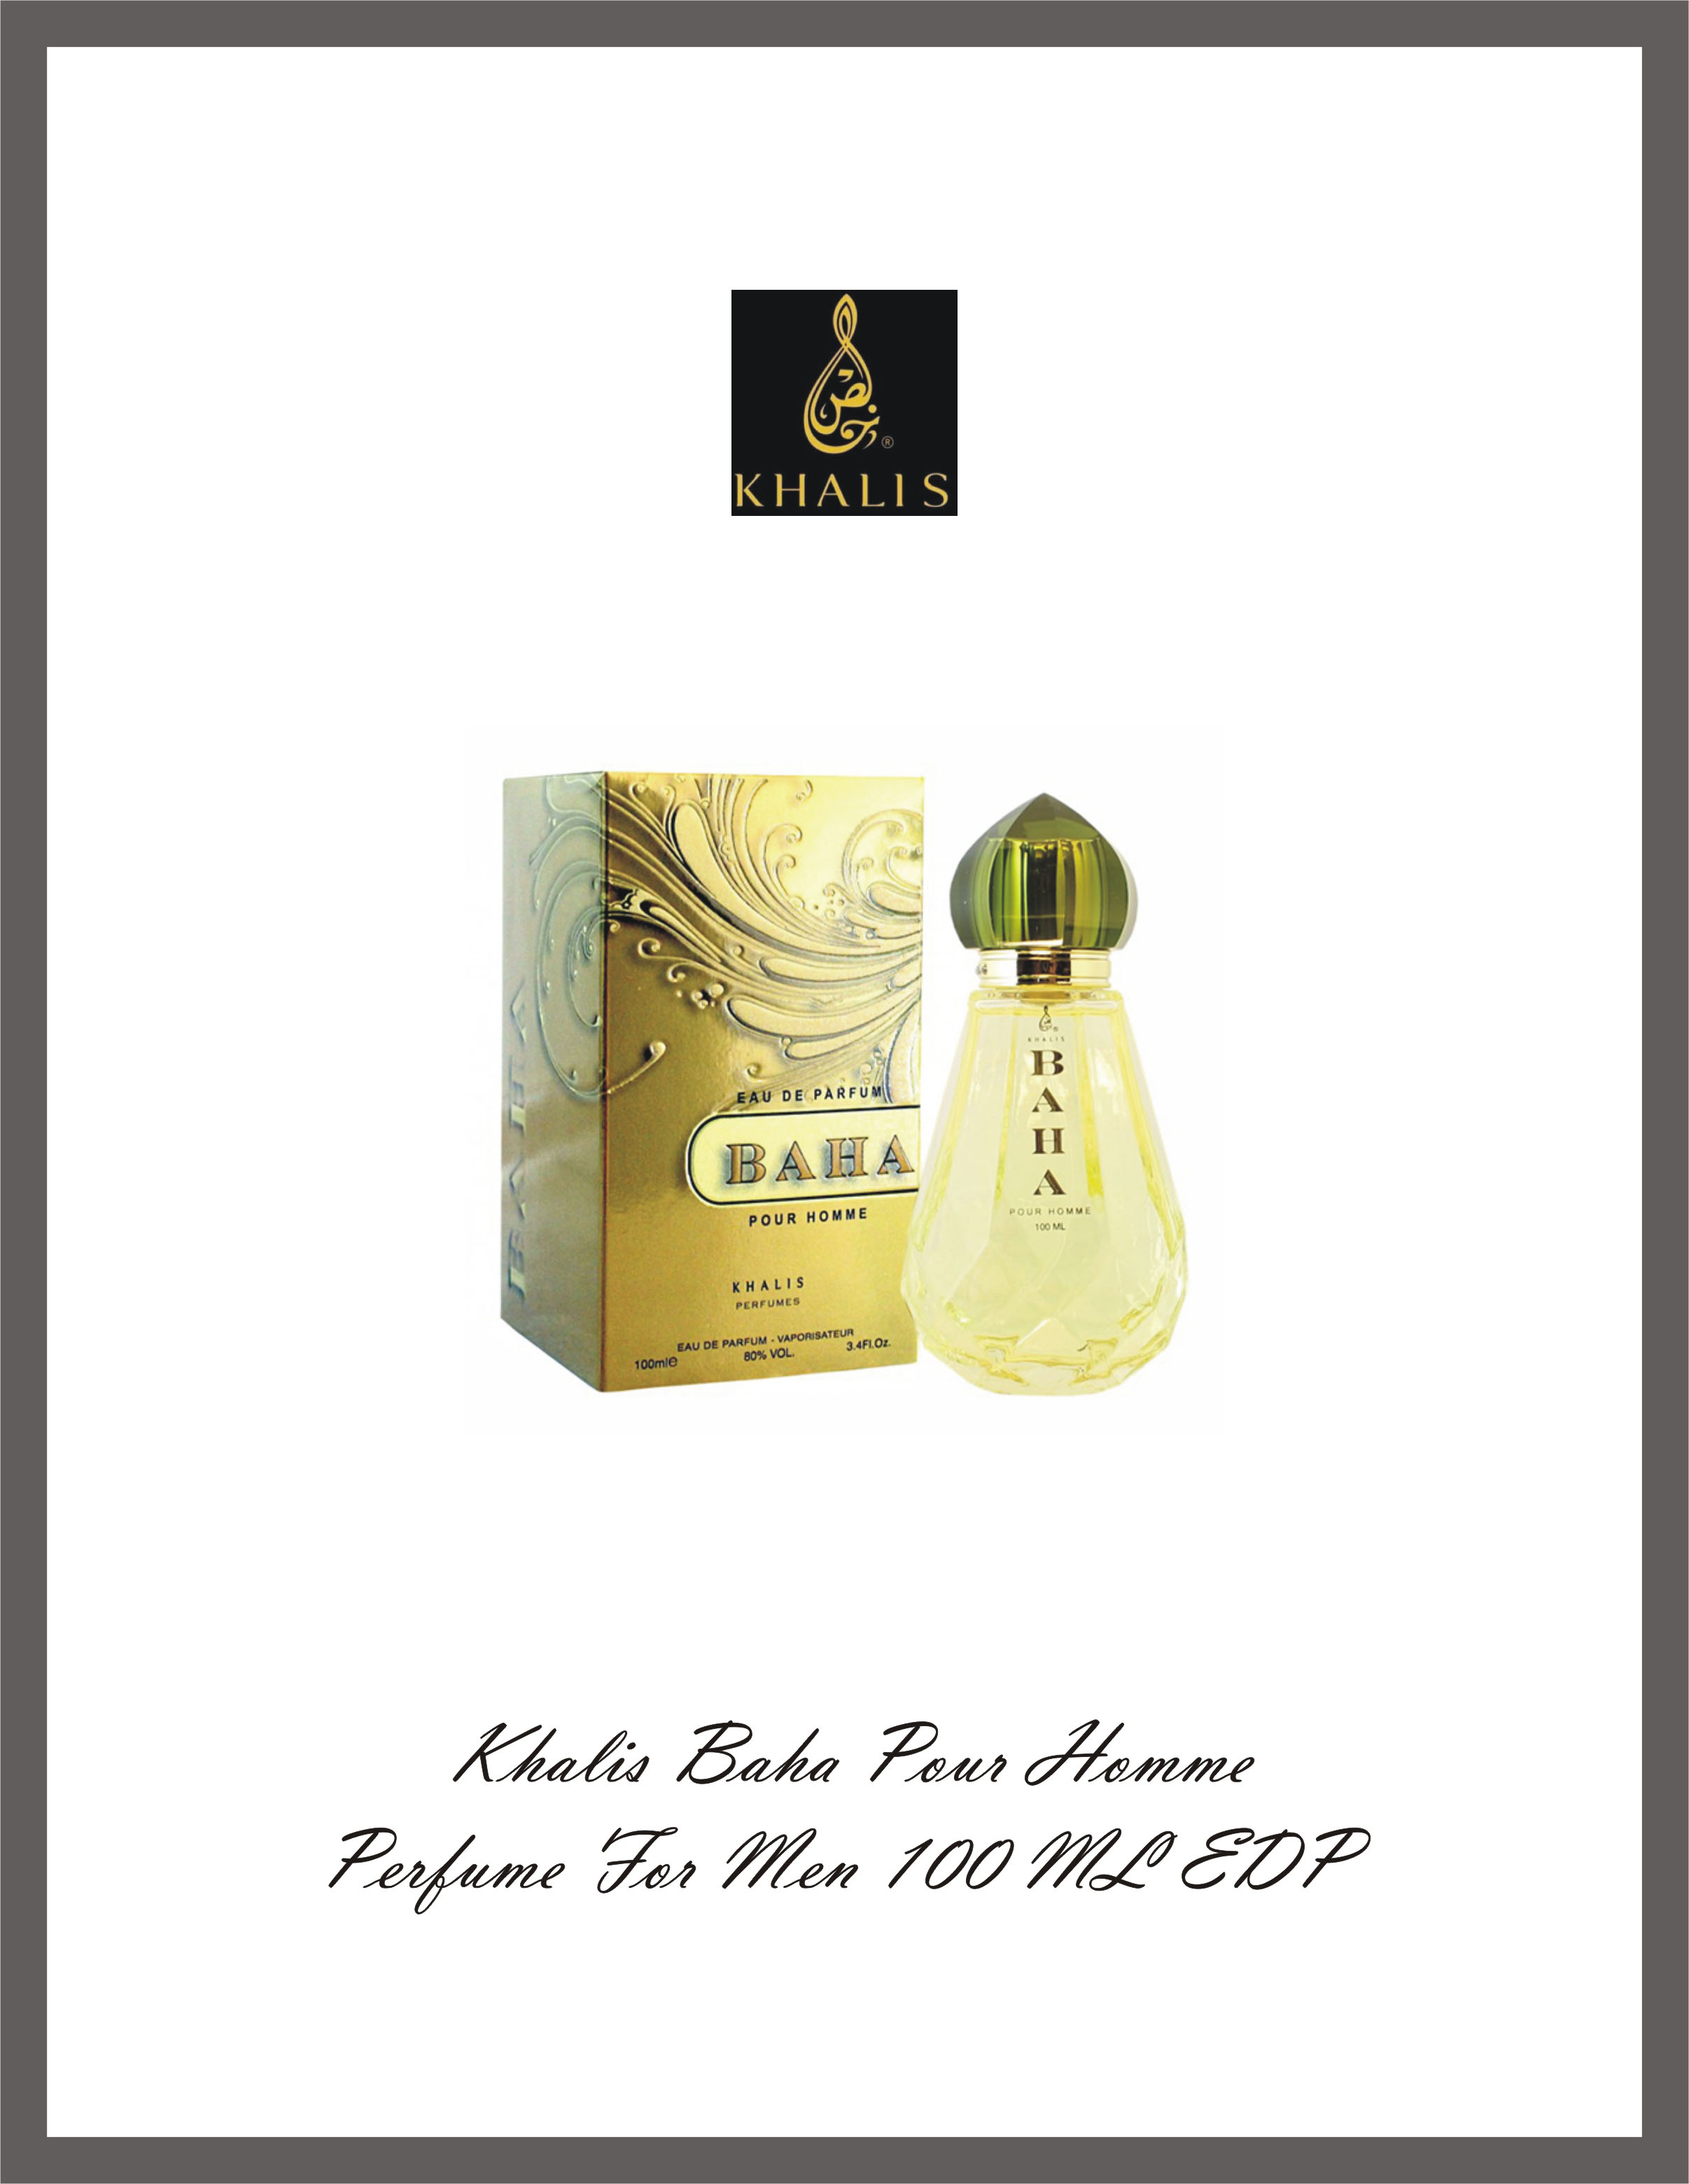 khalis-baha-pour-homme-perfume-for-men-100-ml-edp